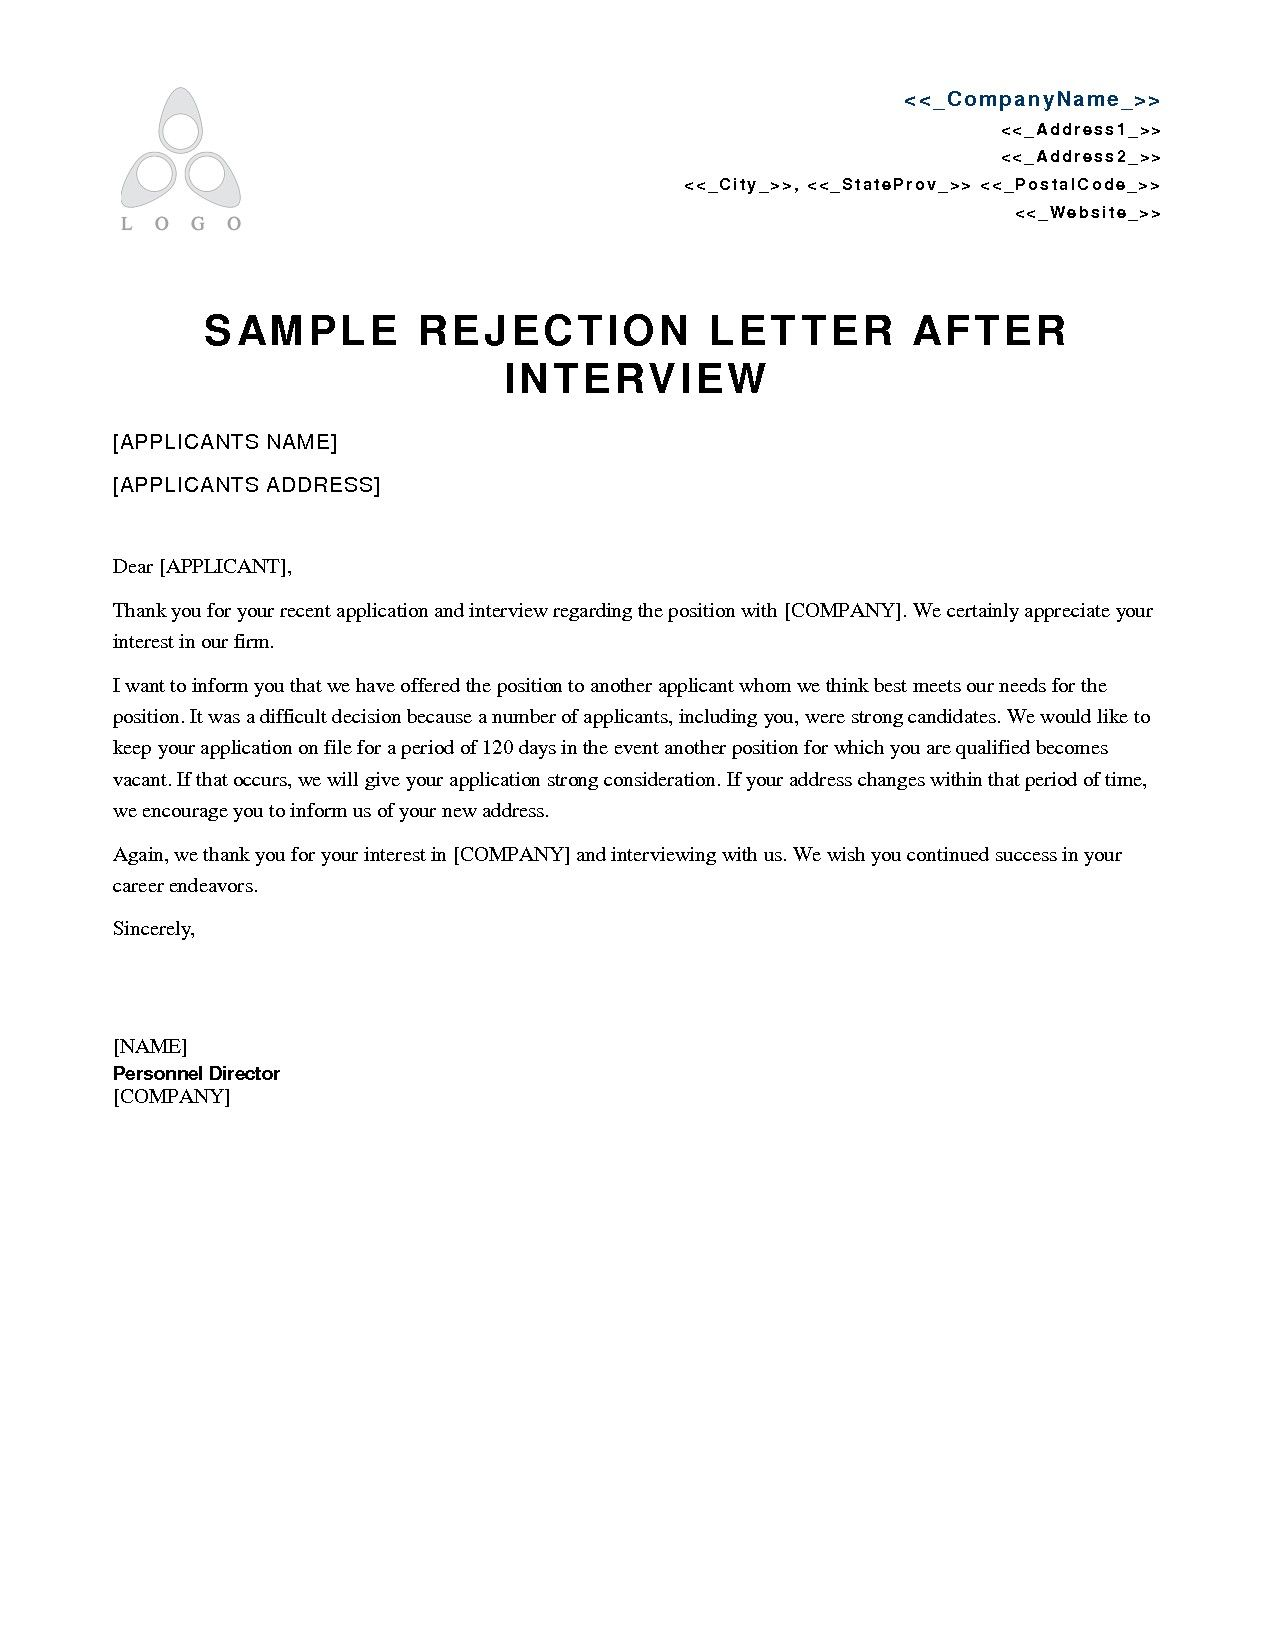 download new job rejection thank you letter sample at best resume format in word food and beverage cv machine learning fresher